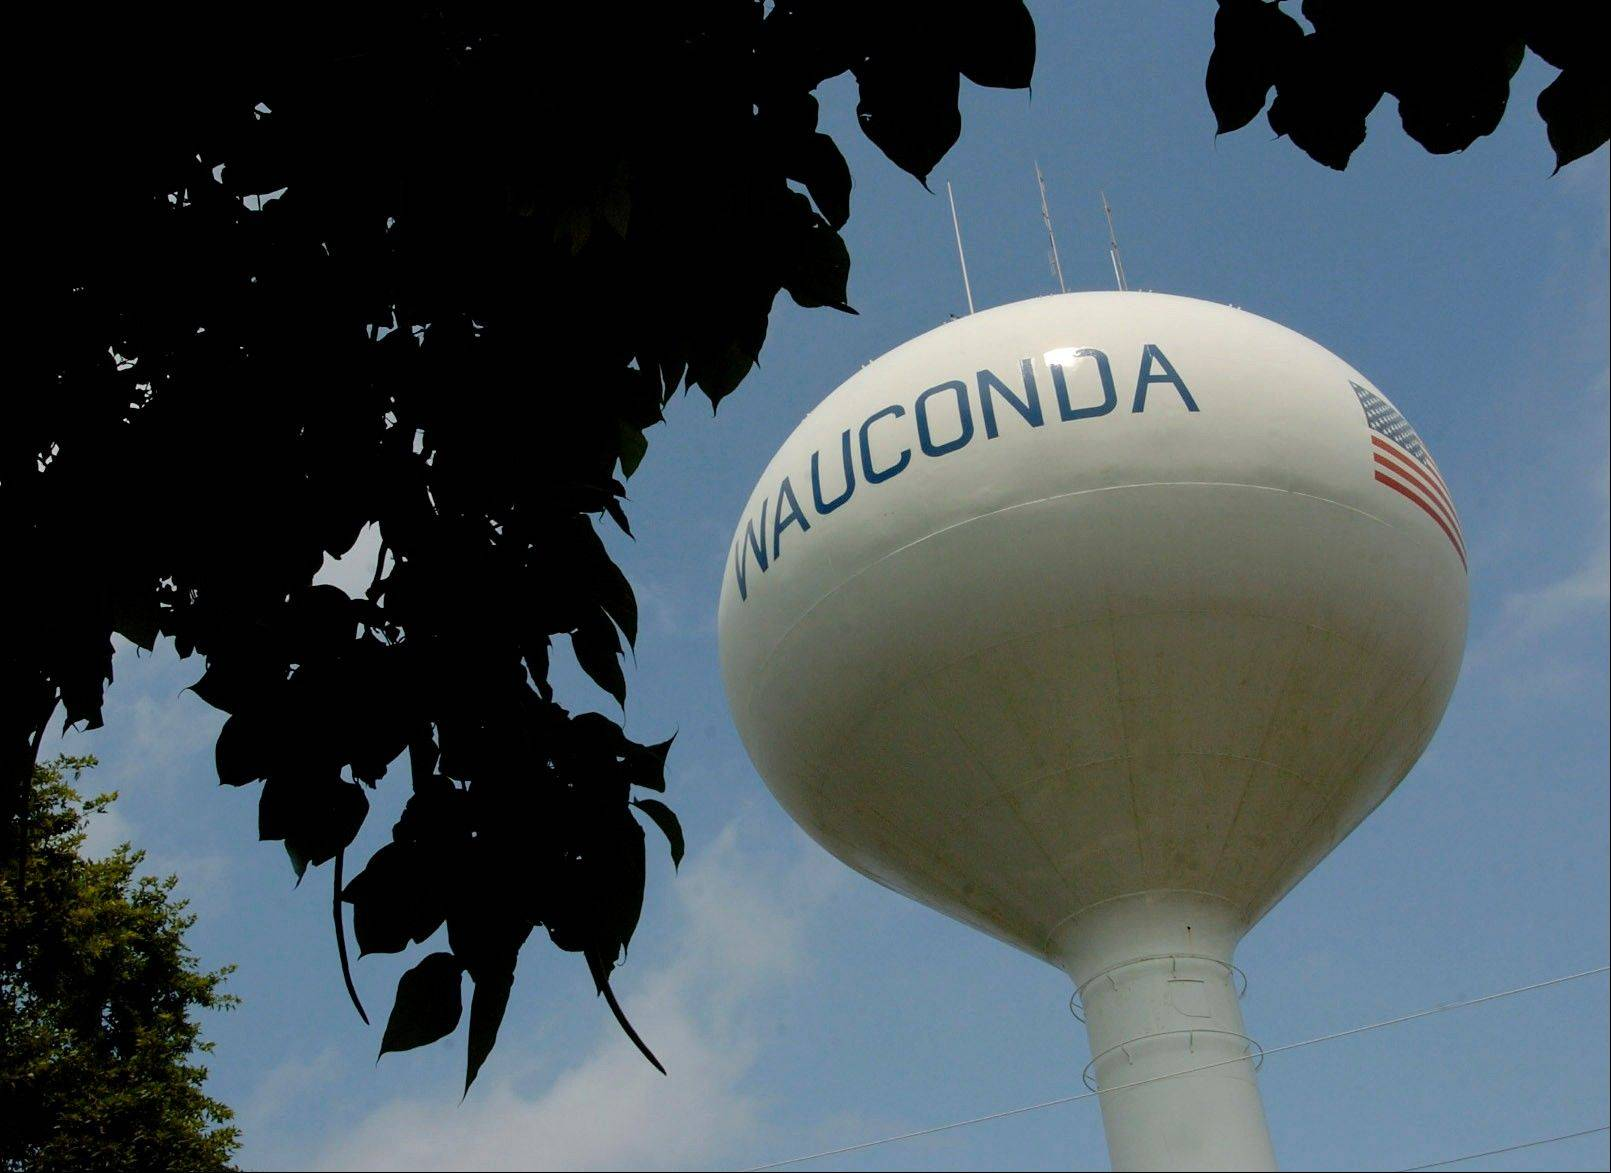 The first phase of Wauconda�s long-awaited Lake Michigan water project is expected to begin in spring 2014.